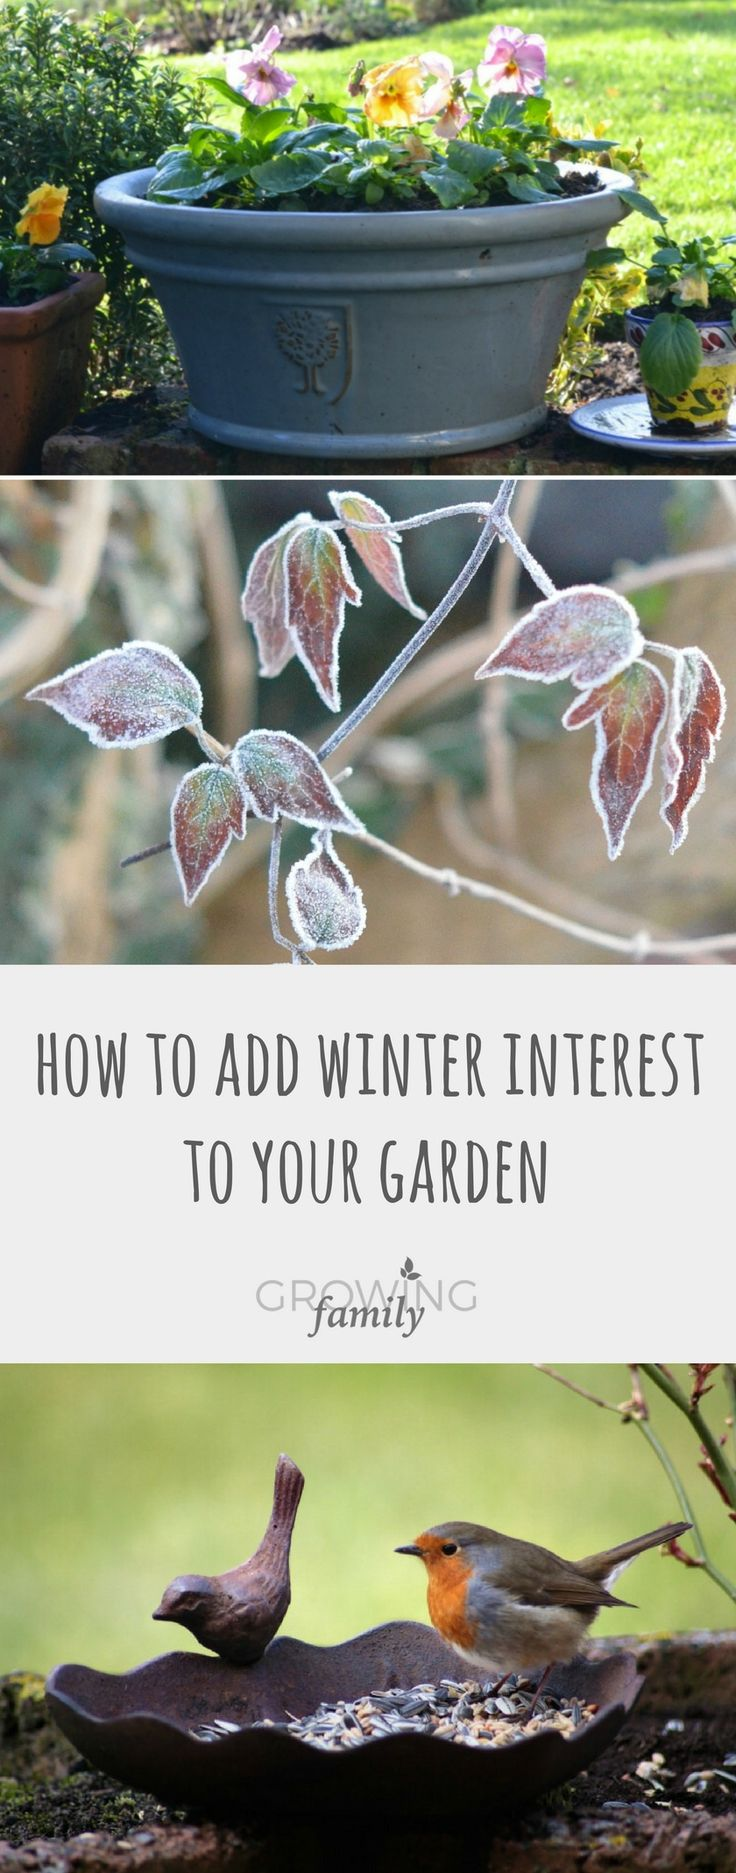 Low-effort tips and ideas for enhancing your winter garden. Easy ways to provide maximum interest during the colder months!